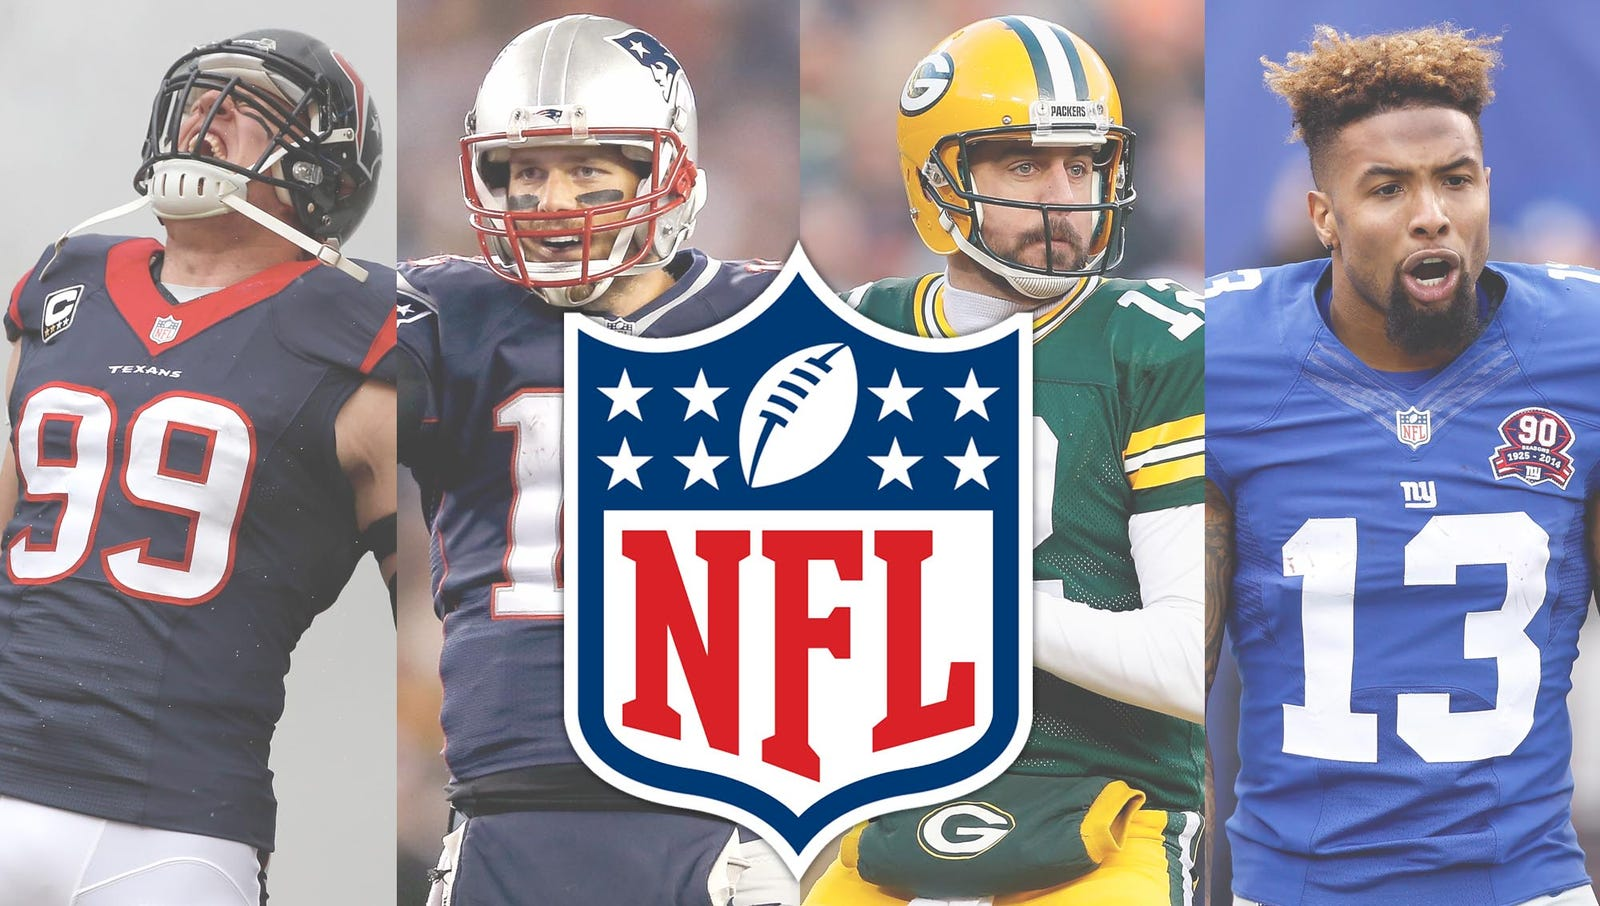 The 2015 NFL season is poised to be among the most memorable and eventful in league history, with several of the notable moments hopefully occurring on the field. Onion Sports breaks down everything you need to know before the season kicks off.